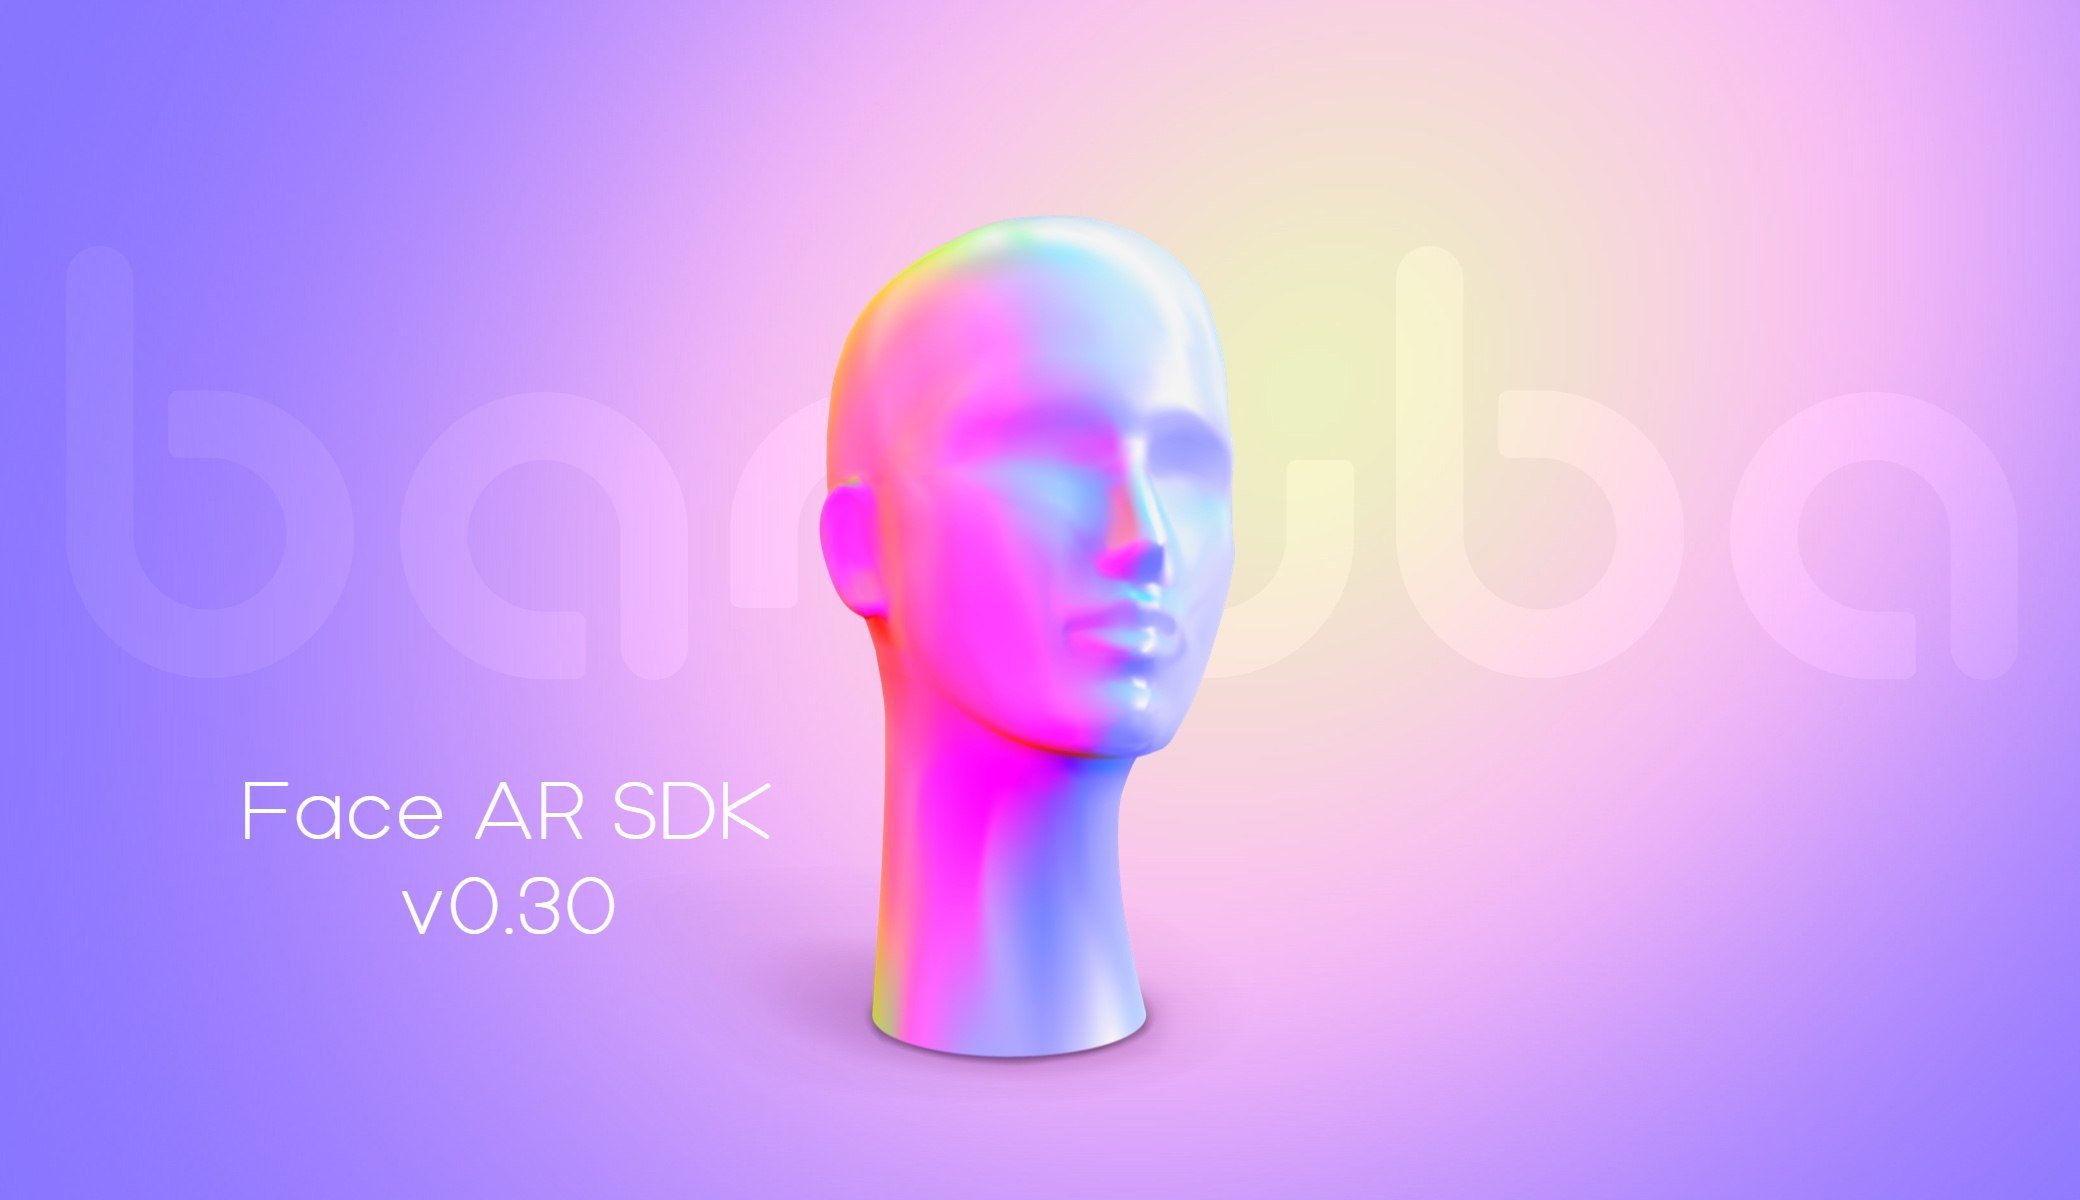 face ar sdk v0.30 release notes